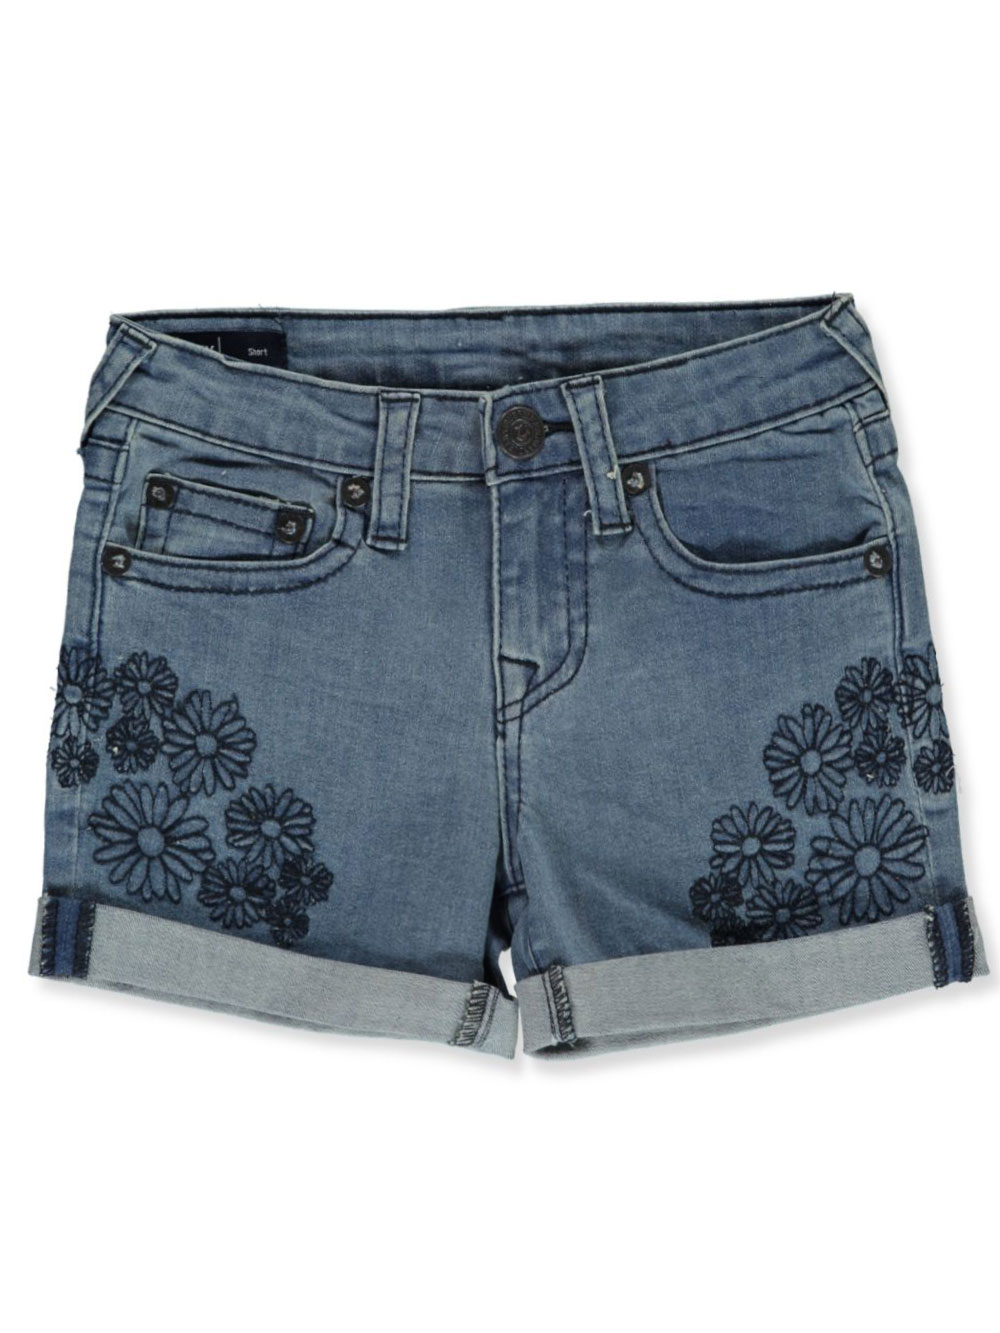 Size 16 Shorts for Girls